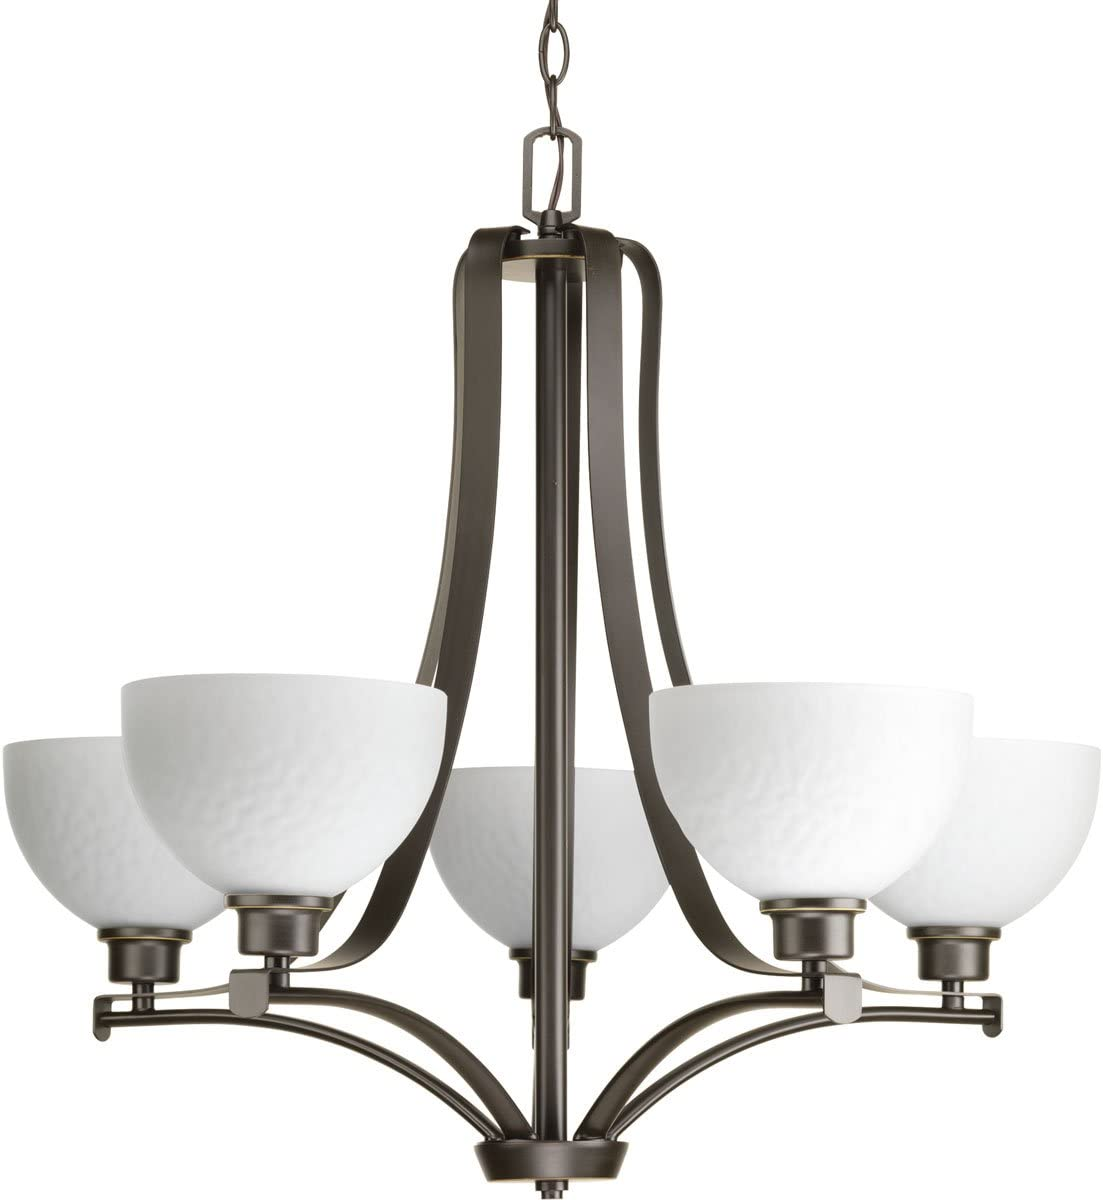 Progress Lighting P4271-20 Transitional Five Light Chandelier from Legend Collection Dark Finish, Antique Bronze